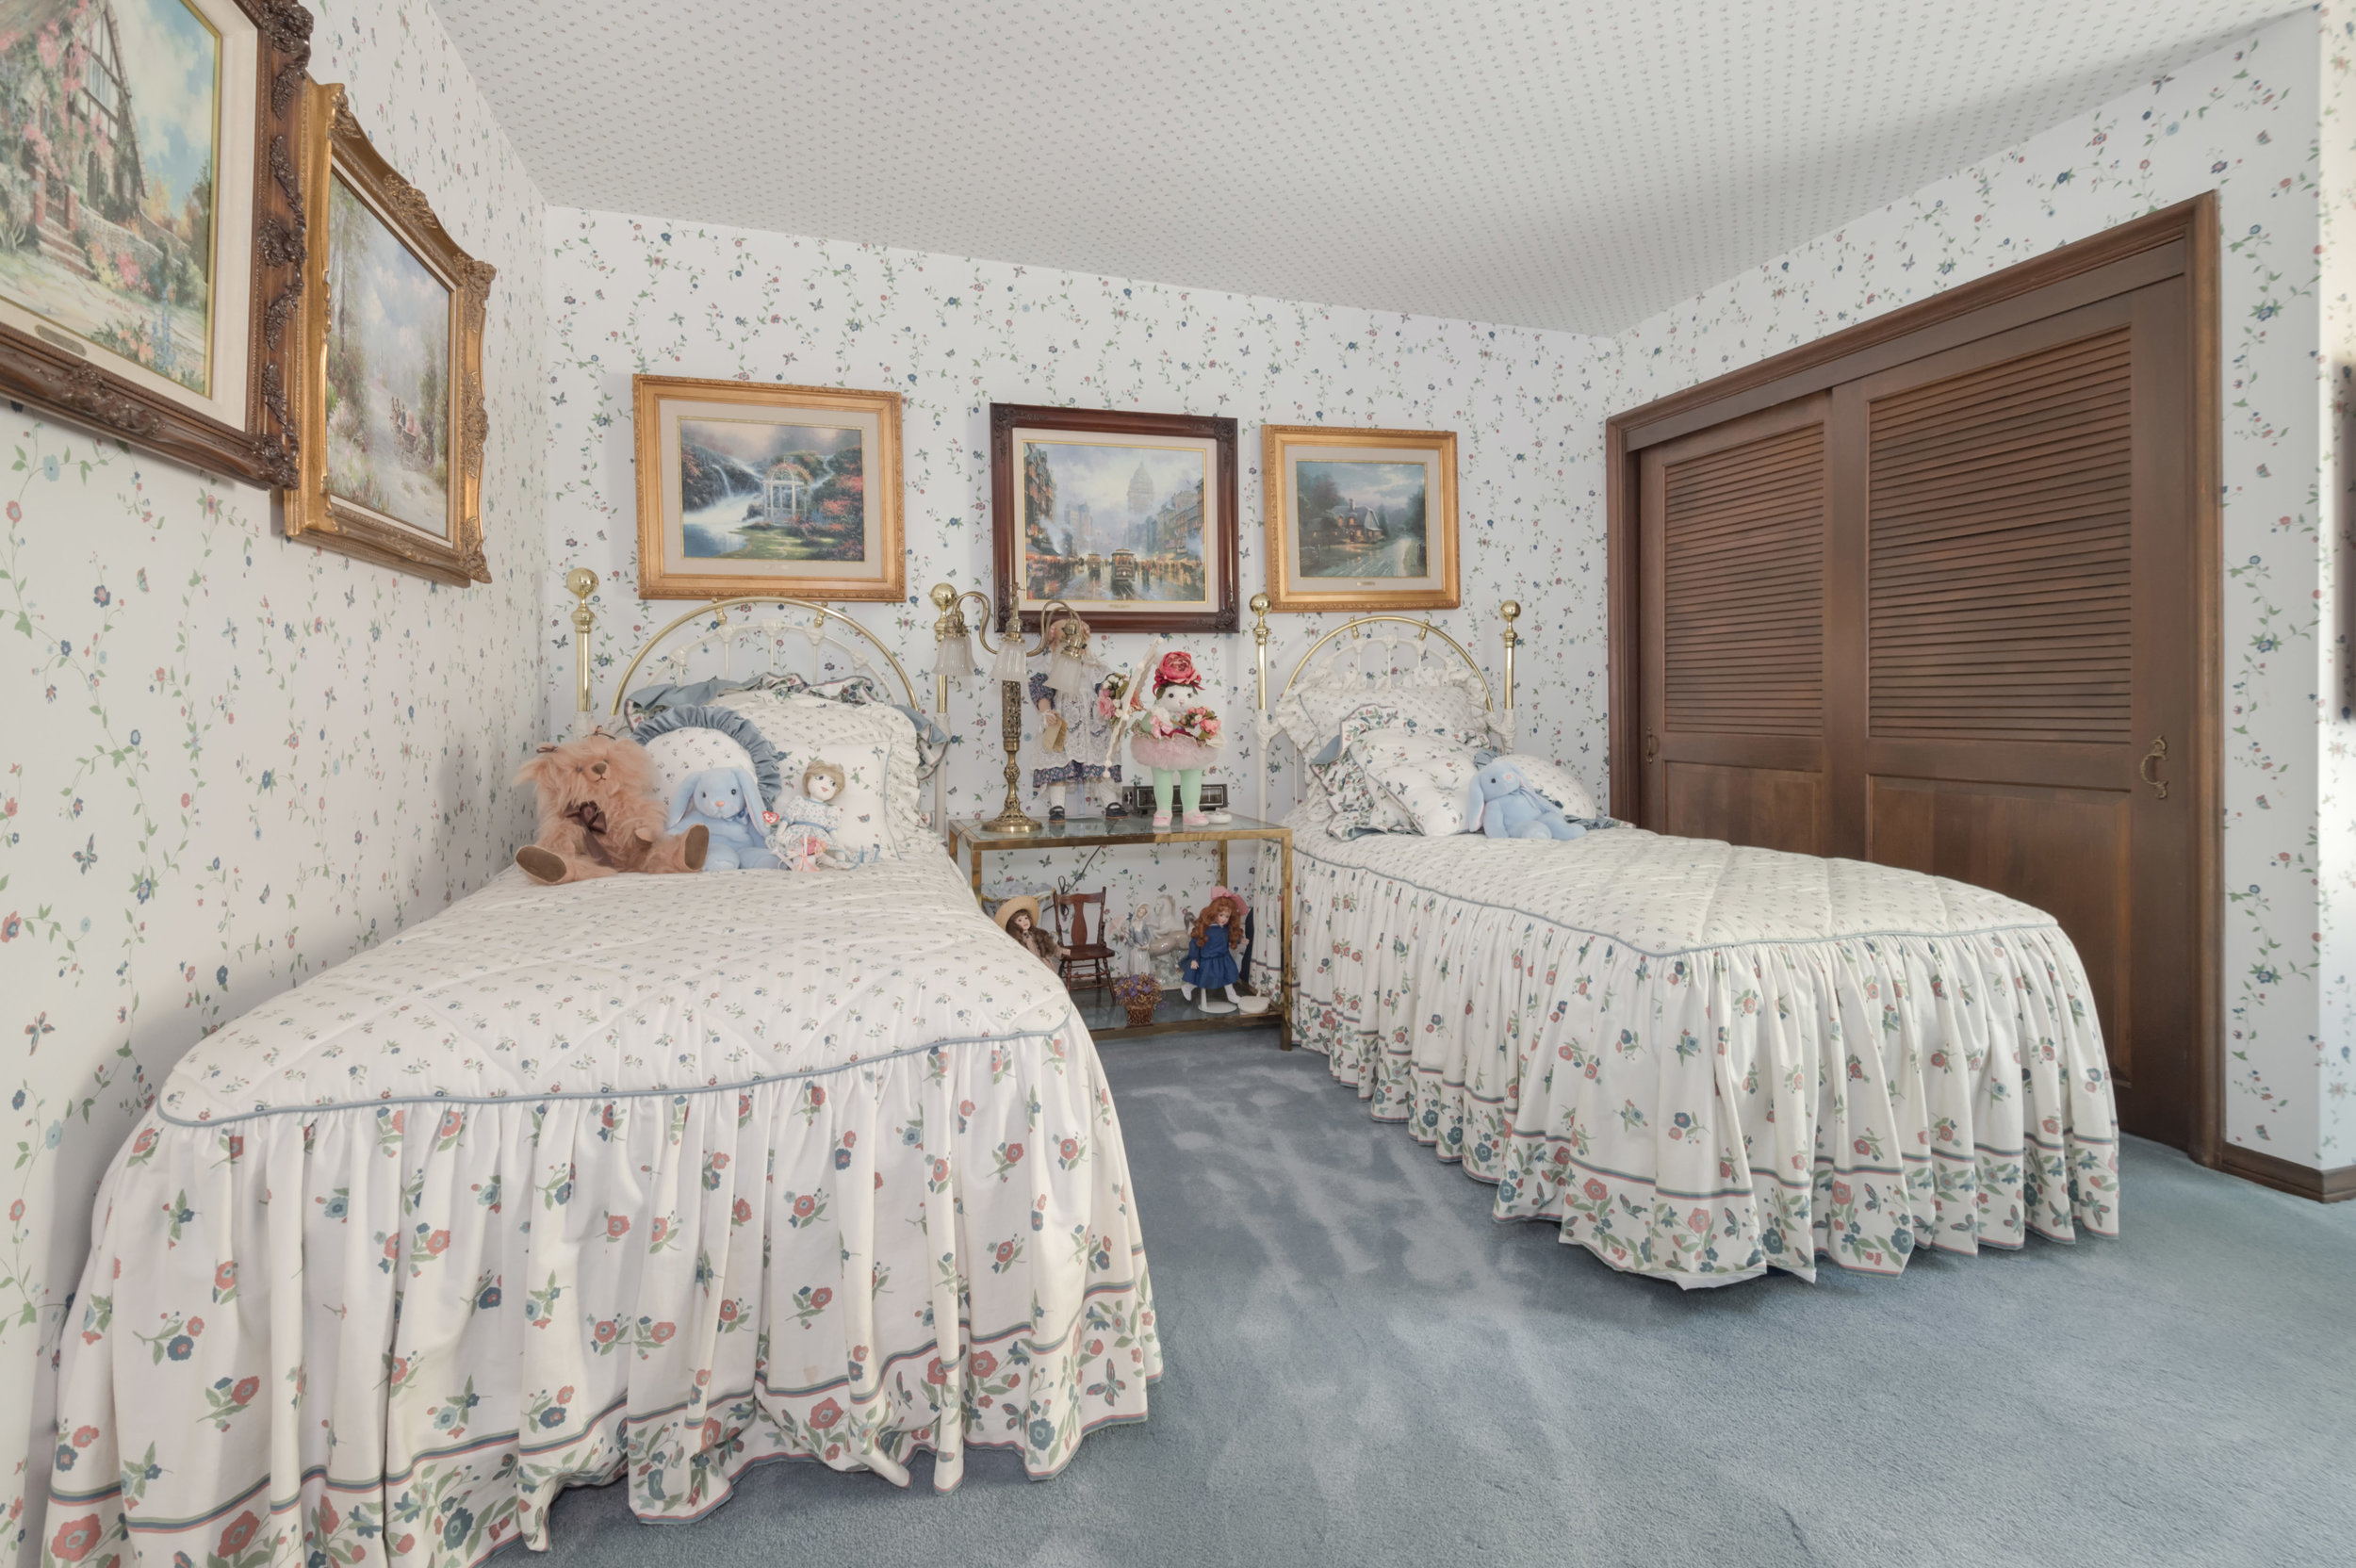 014 Bedroom 3191 Toppington Drive Beverly Hills For Sale Lease The Malibu Life Team Luxury Real Estate.jpg